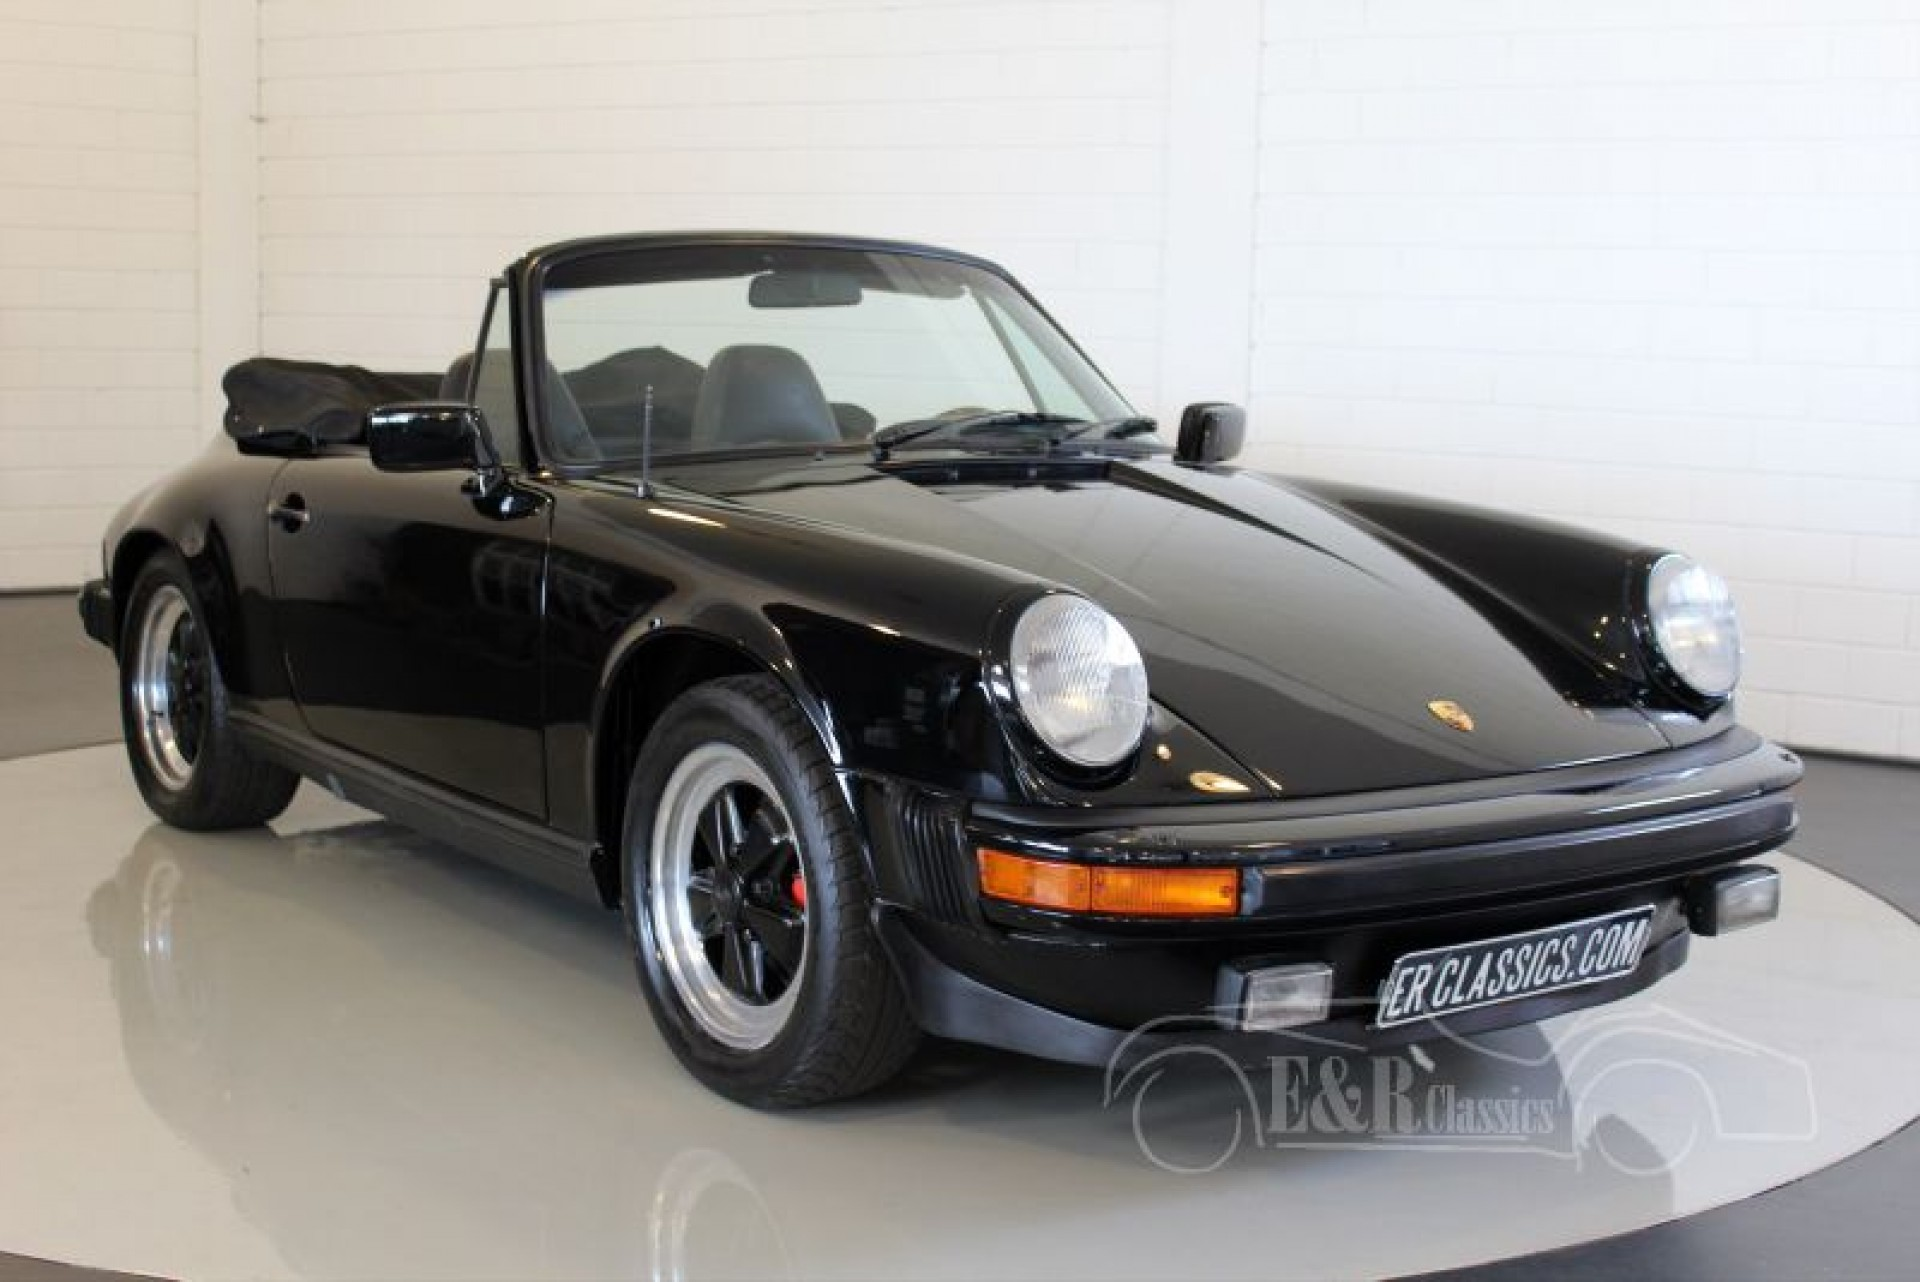 porsche 911 sc cabriolet 1983 vendre erclassics. Black Bedroom Furniture Sets. Home Design Ideas